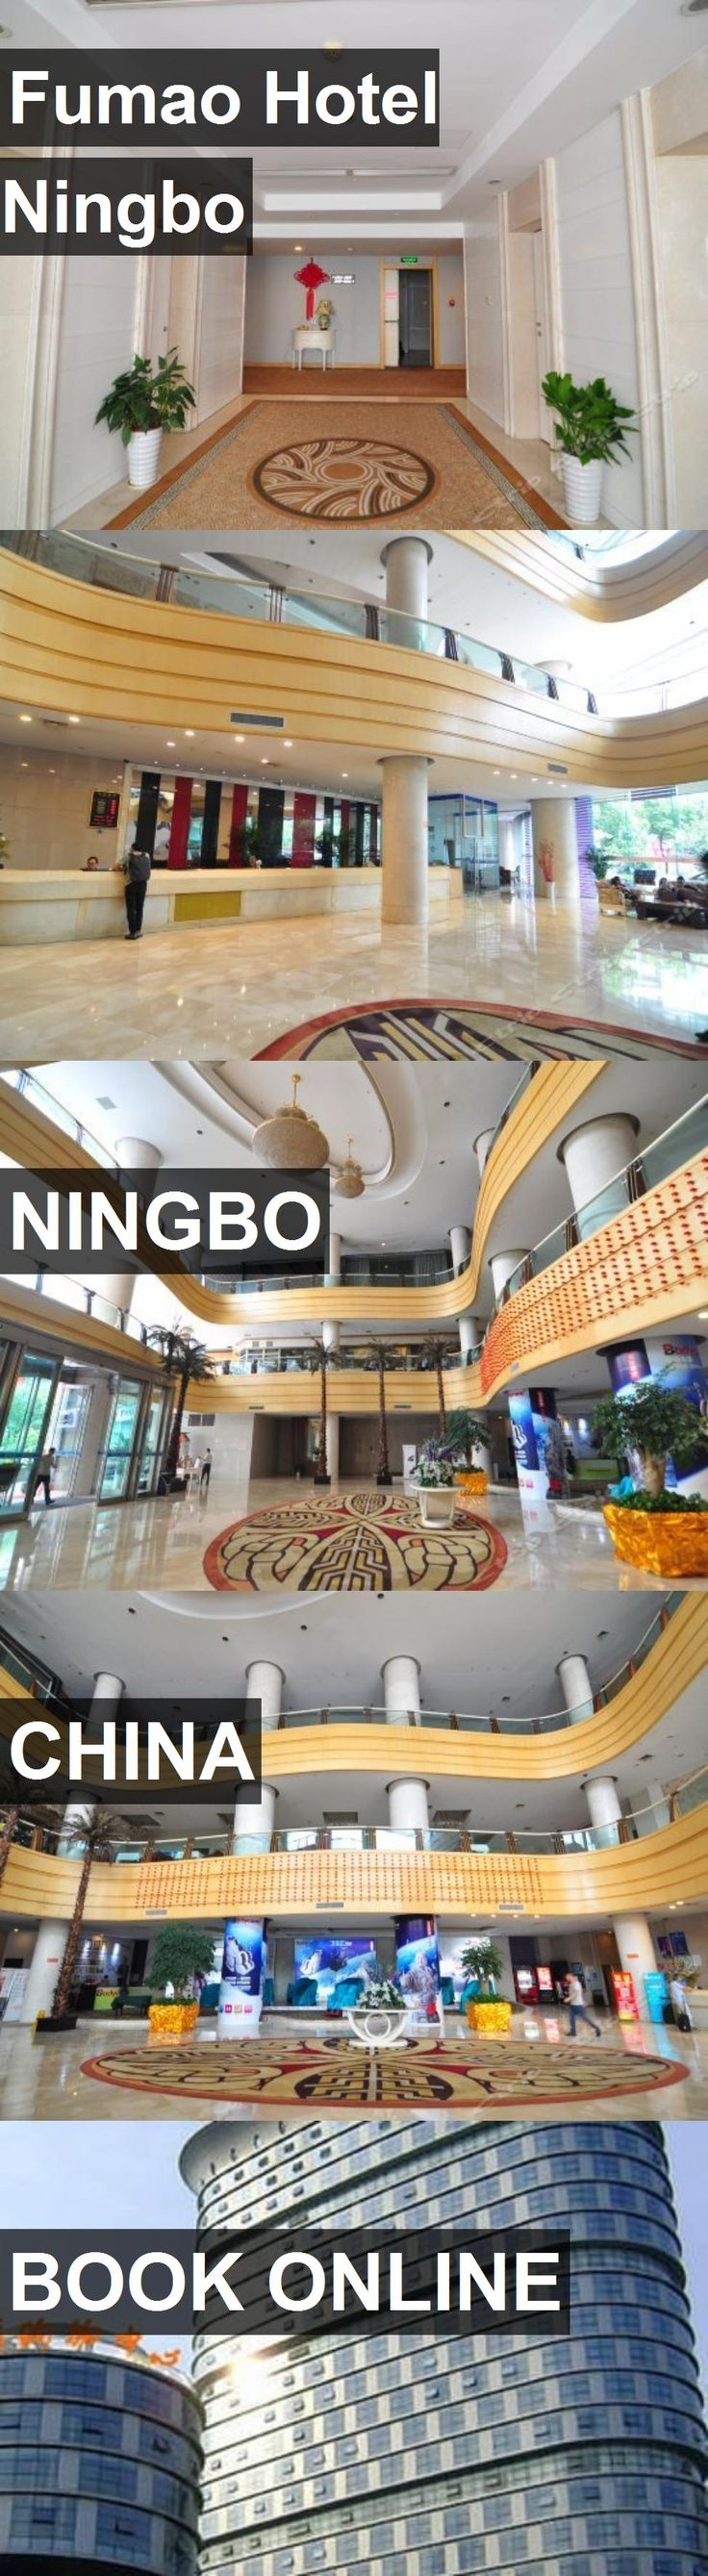 Fumao Hotel Ningbo in Ningbo, China. For more information, photos, reviews and best prices please follow the link. #China #Ningbo #travel #vacation #hotel